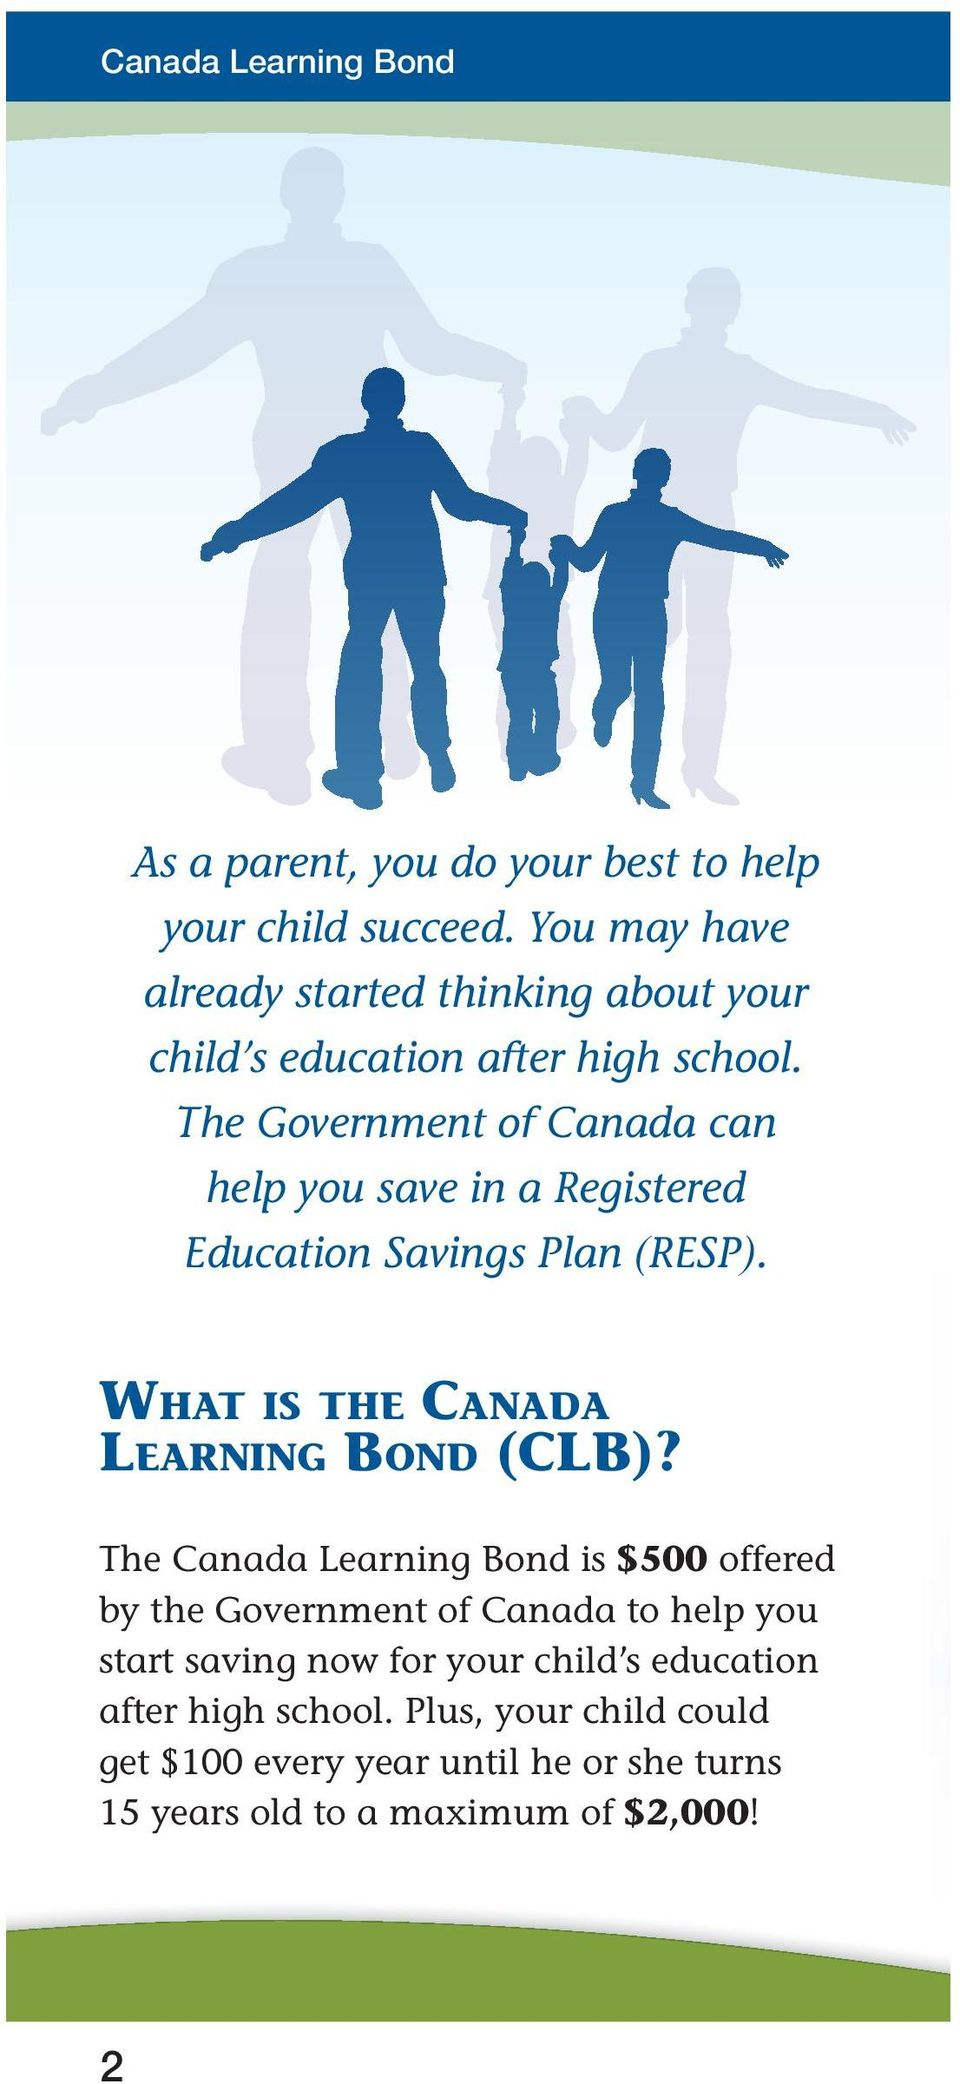 The Government of Canada can help you save in a Registered Education Savings Plan (RESP). WHAT IS THE CANADA LEARNING BOND (CLB)?